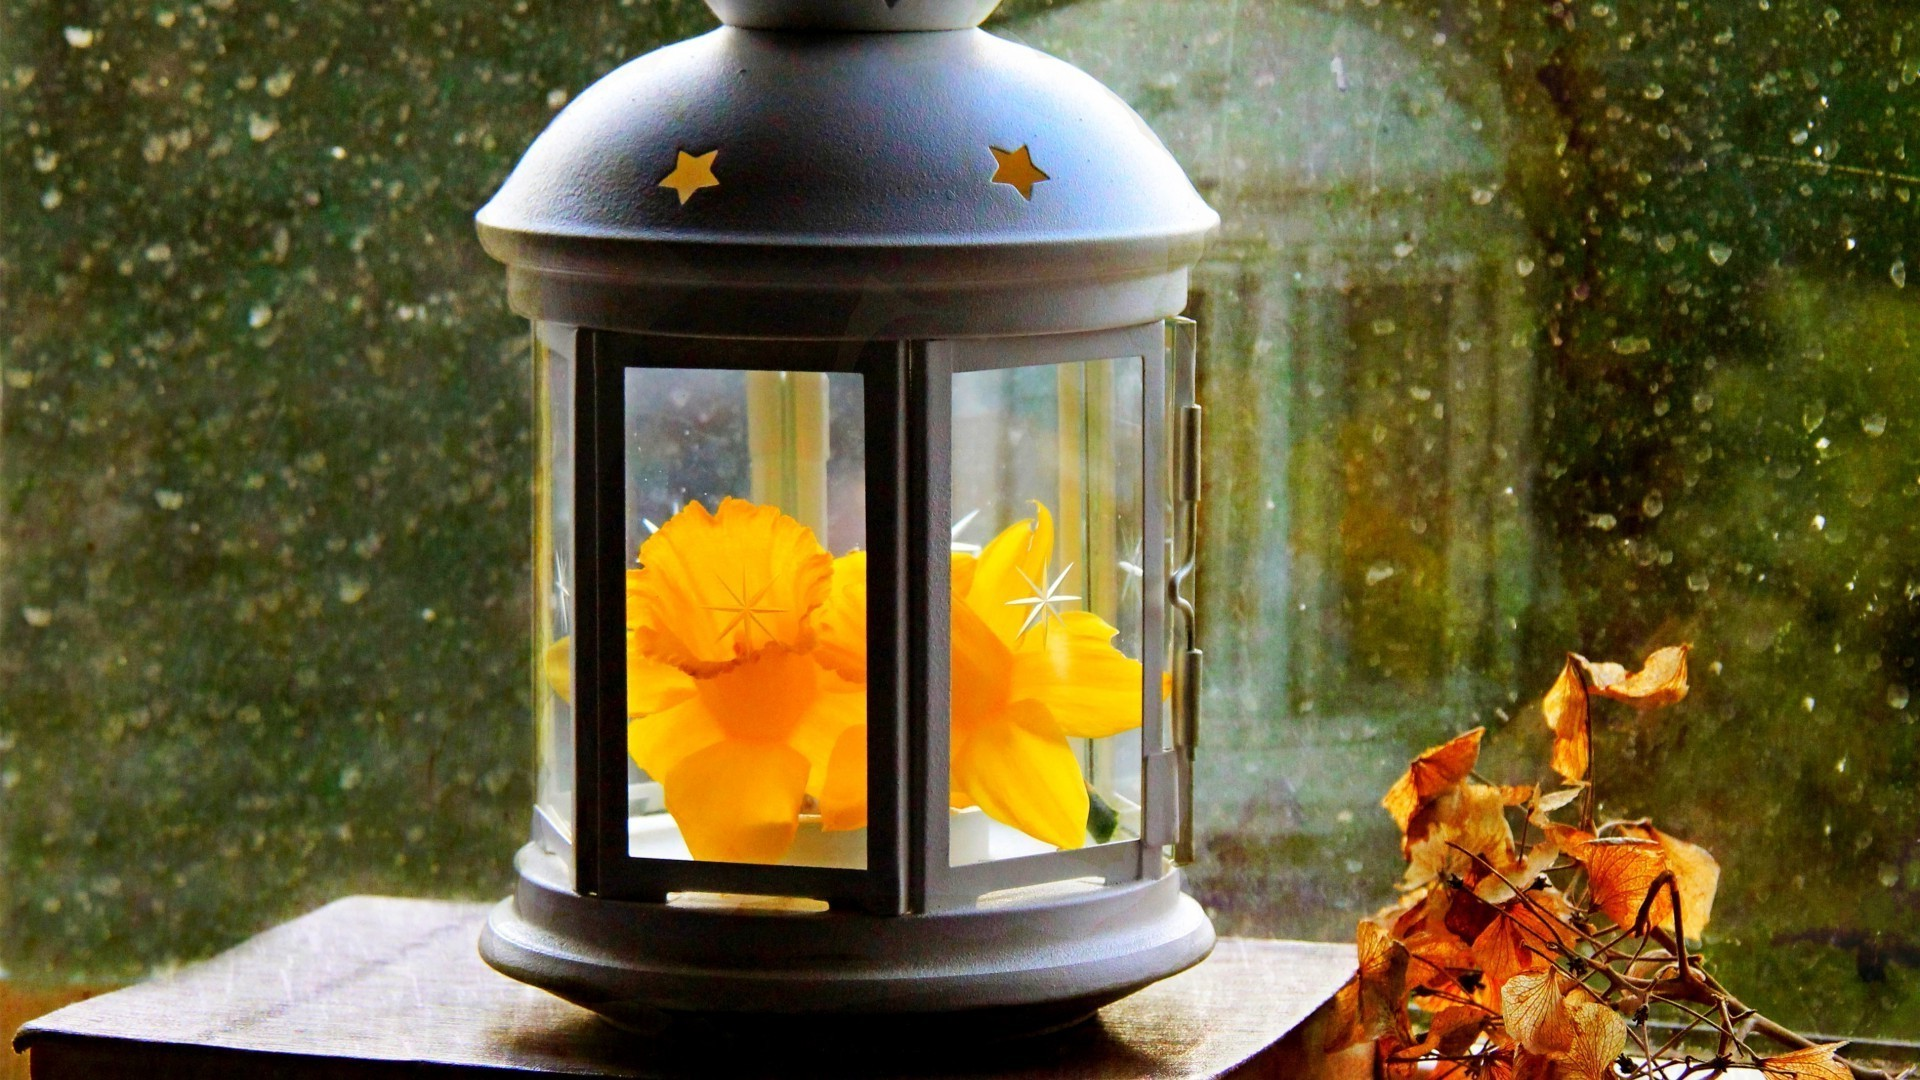 Lamp with a flower on the window